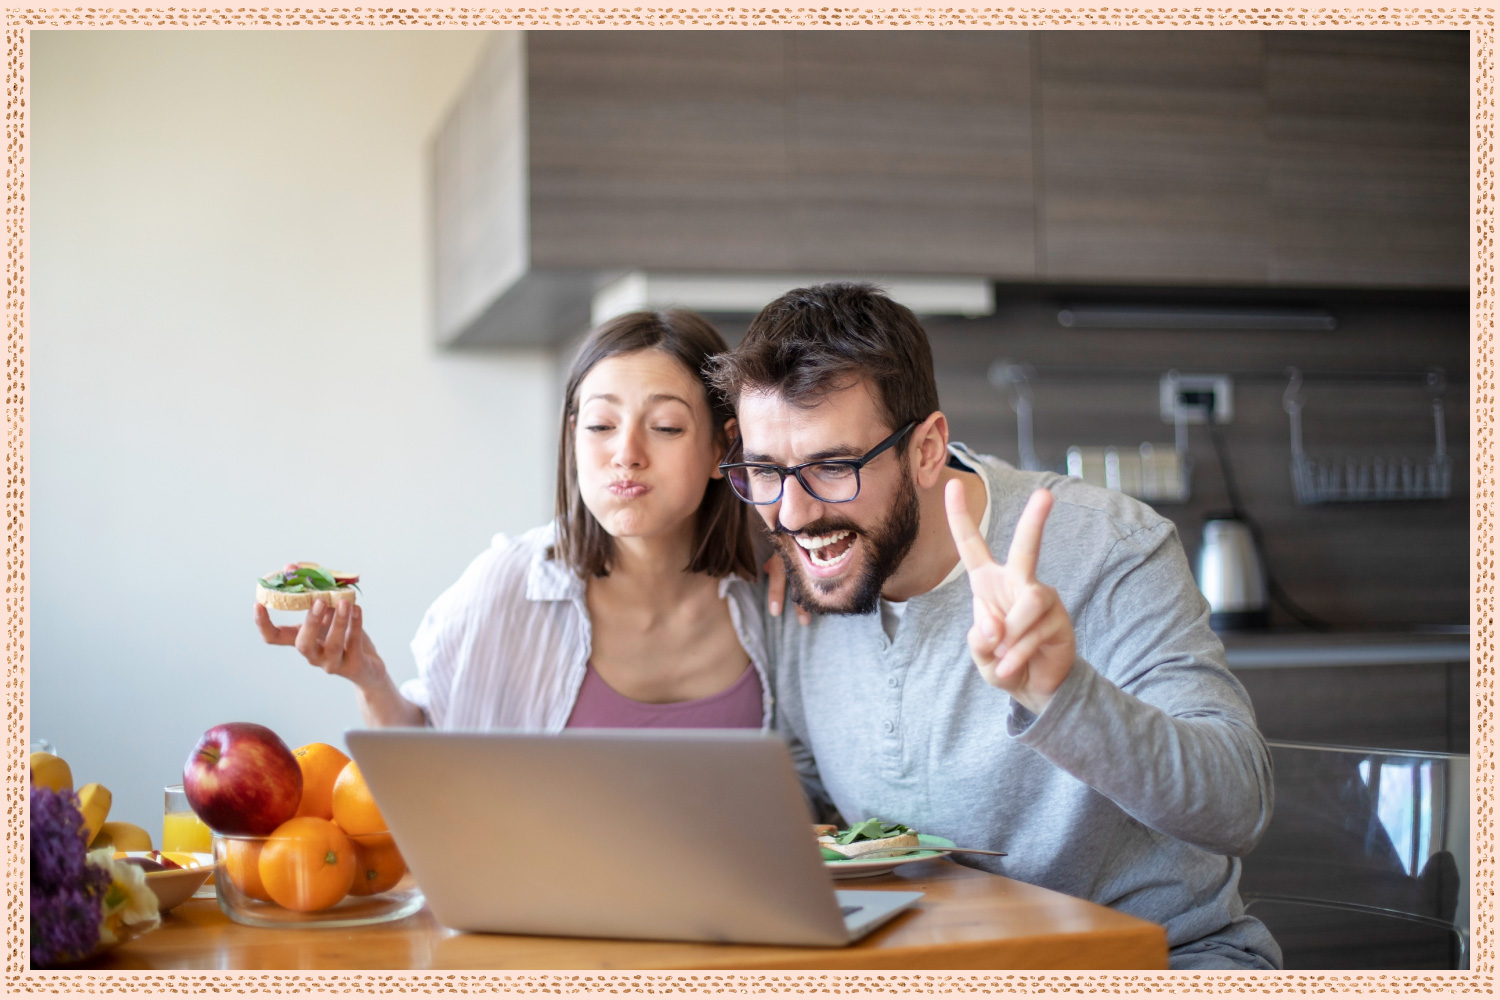 couple eating breakfast while video chatting with someone on their laptop